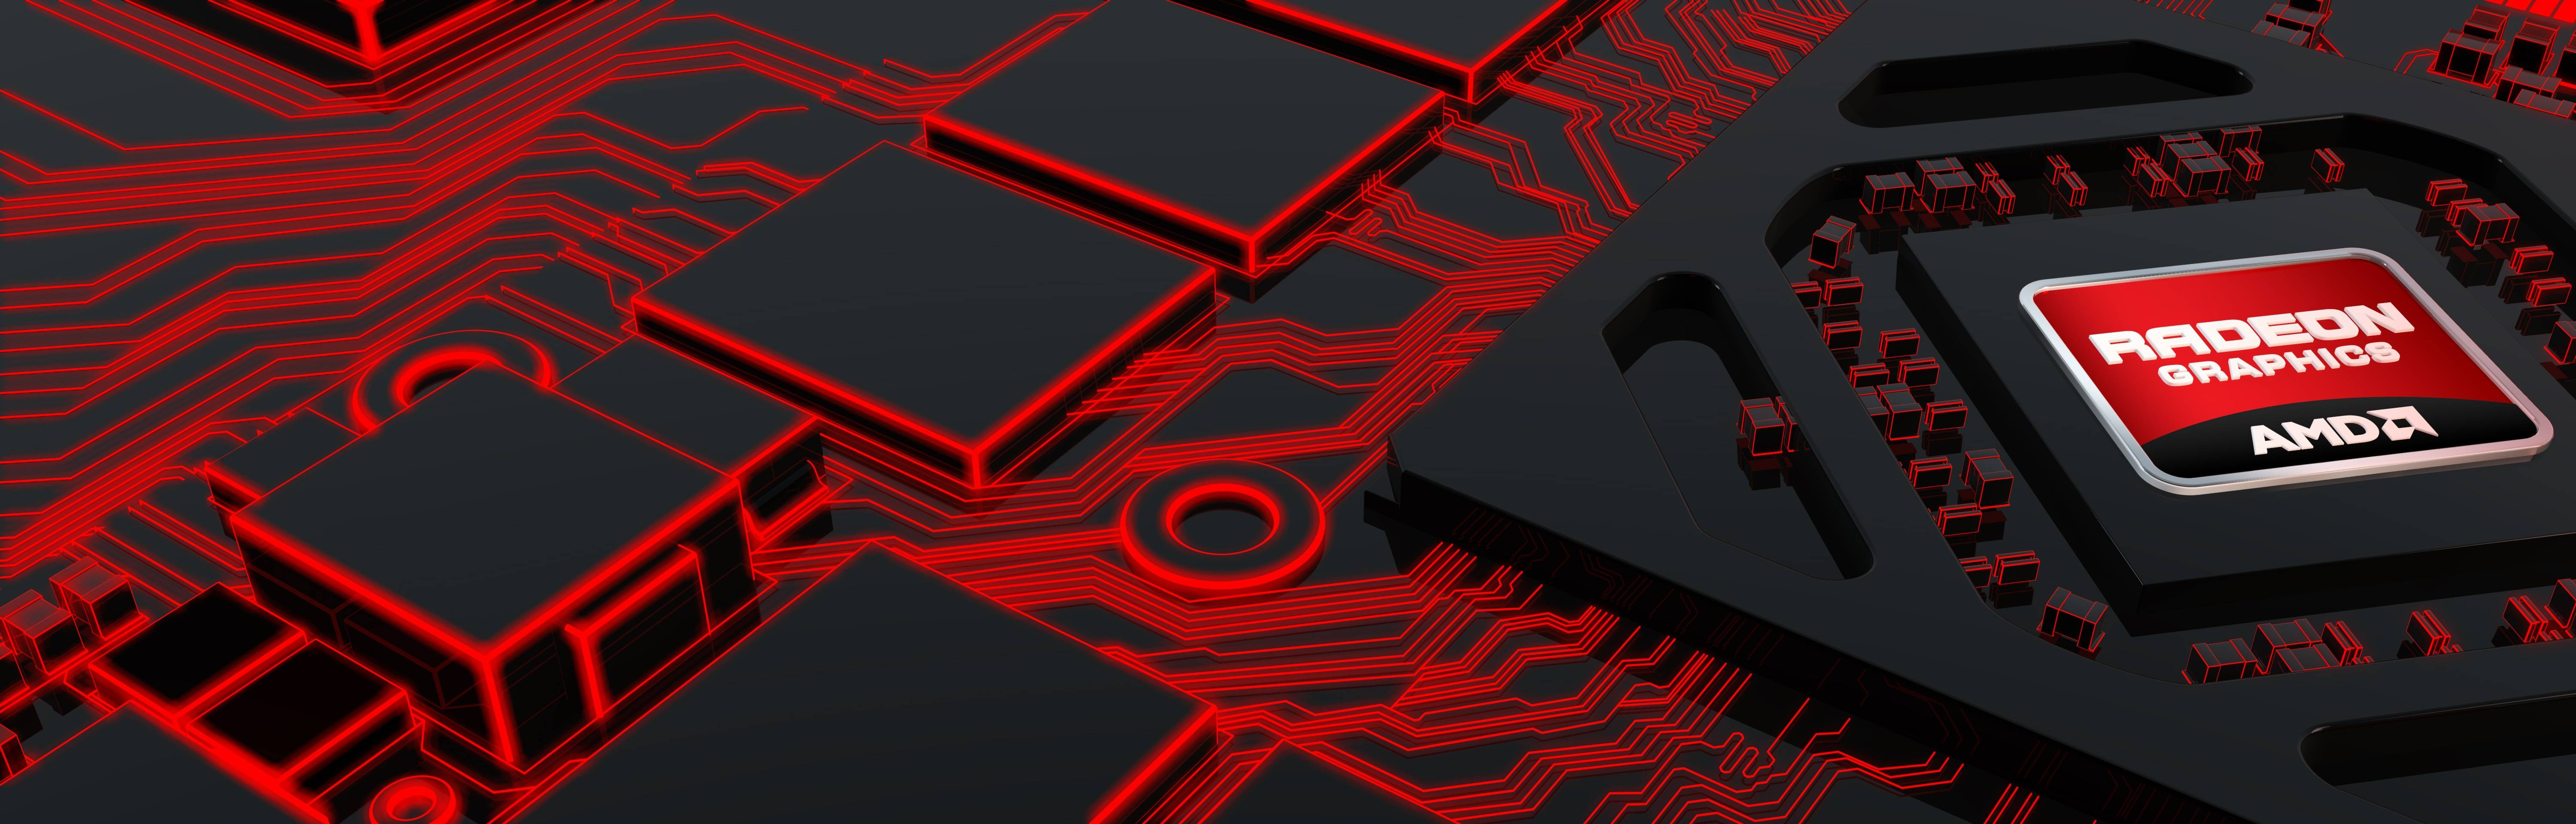 Download Amd Gaming Evolved Wallpaper Gallery